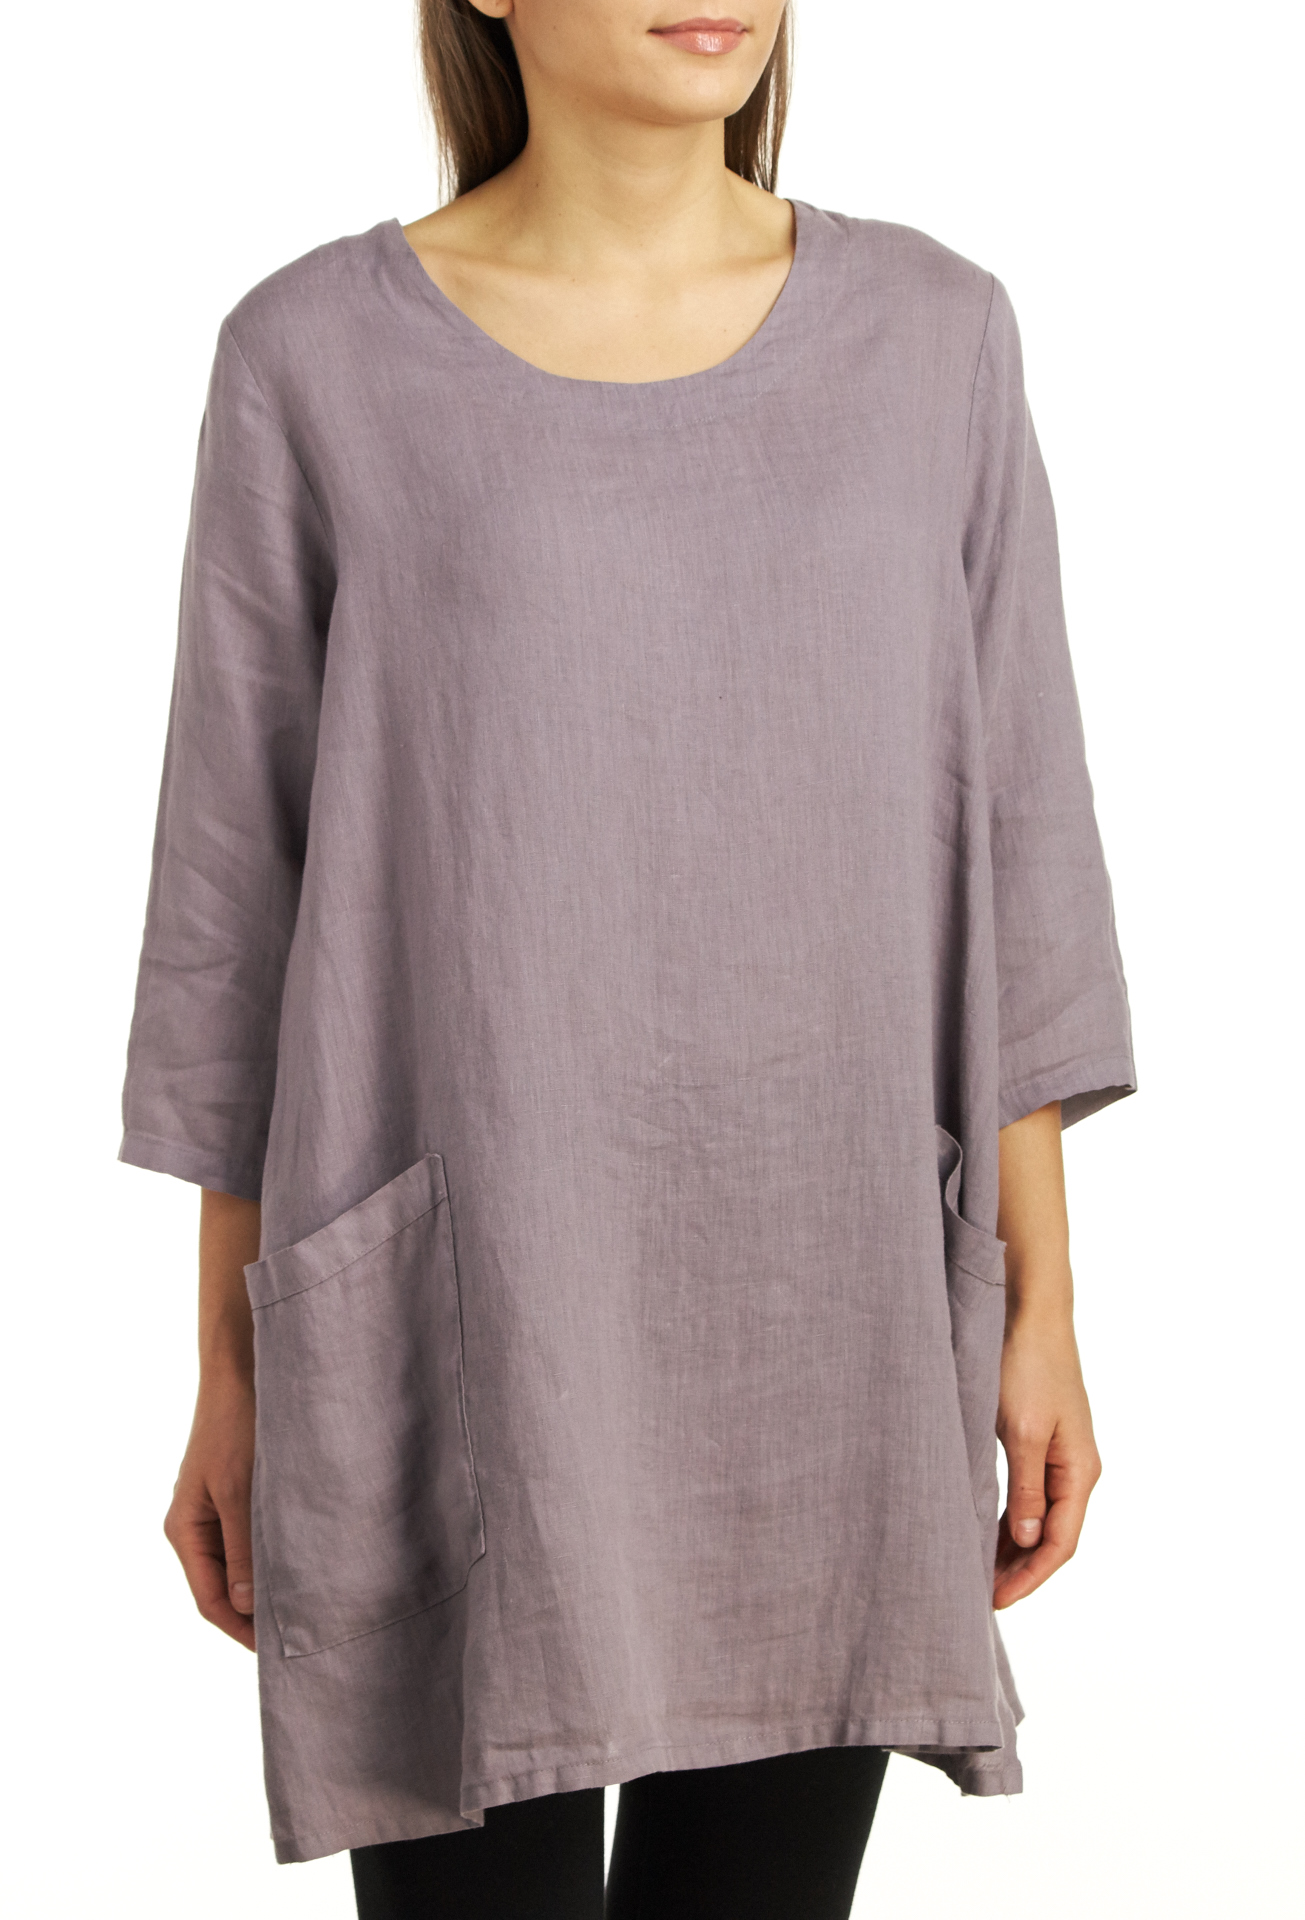 Match Point Women's Linen Pullover Tunic Top - Lavender - Small